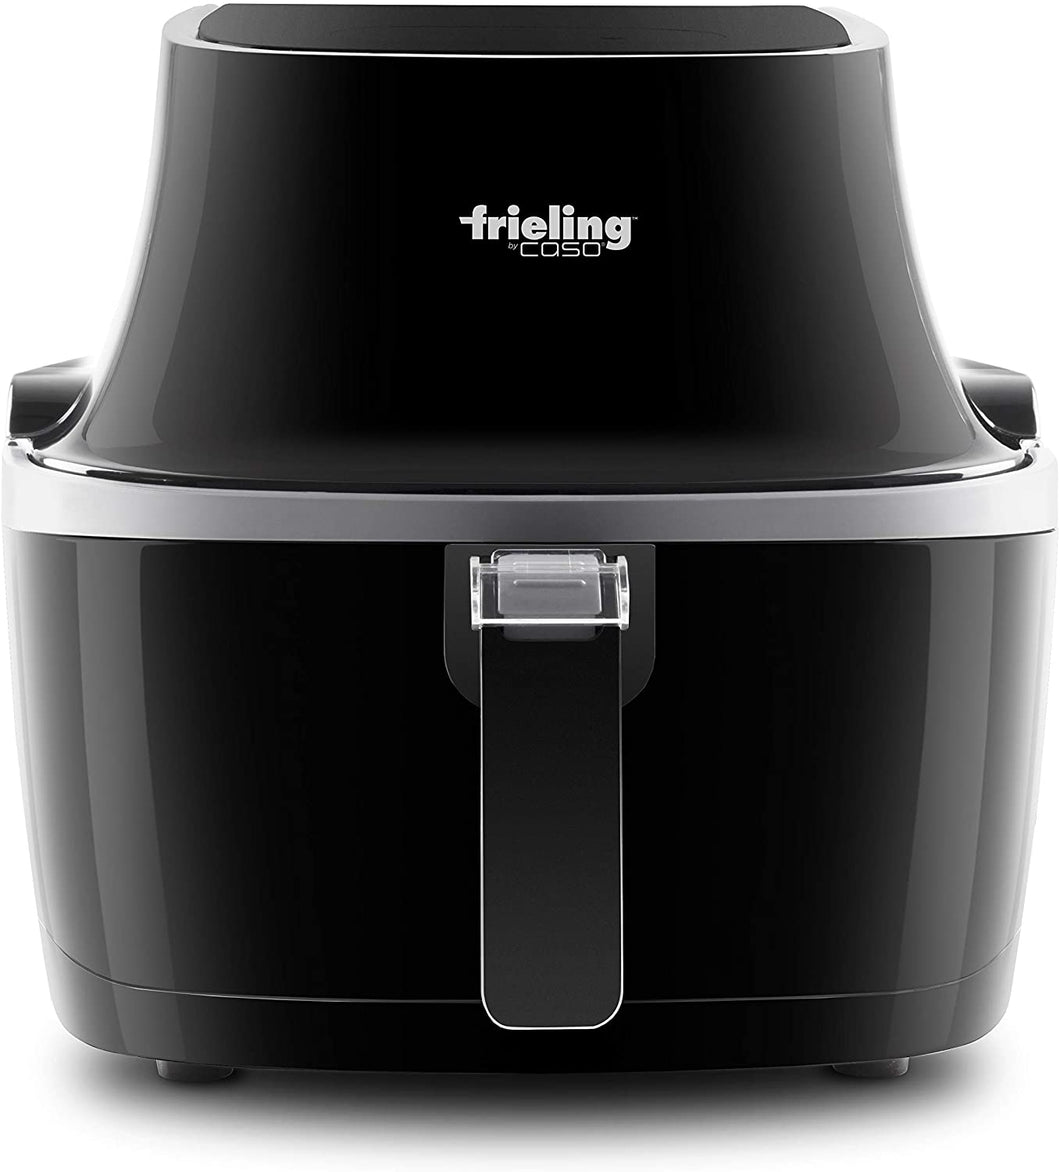 Frieling by Caso Air Fryer 4.6 qt